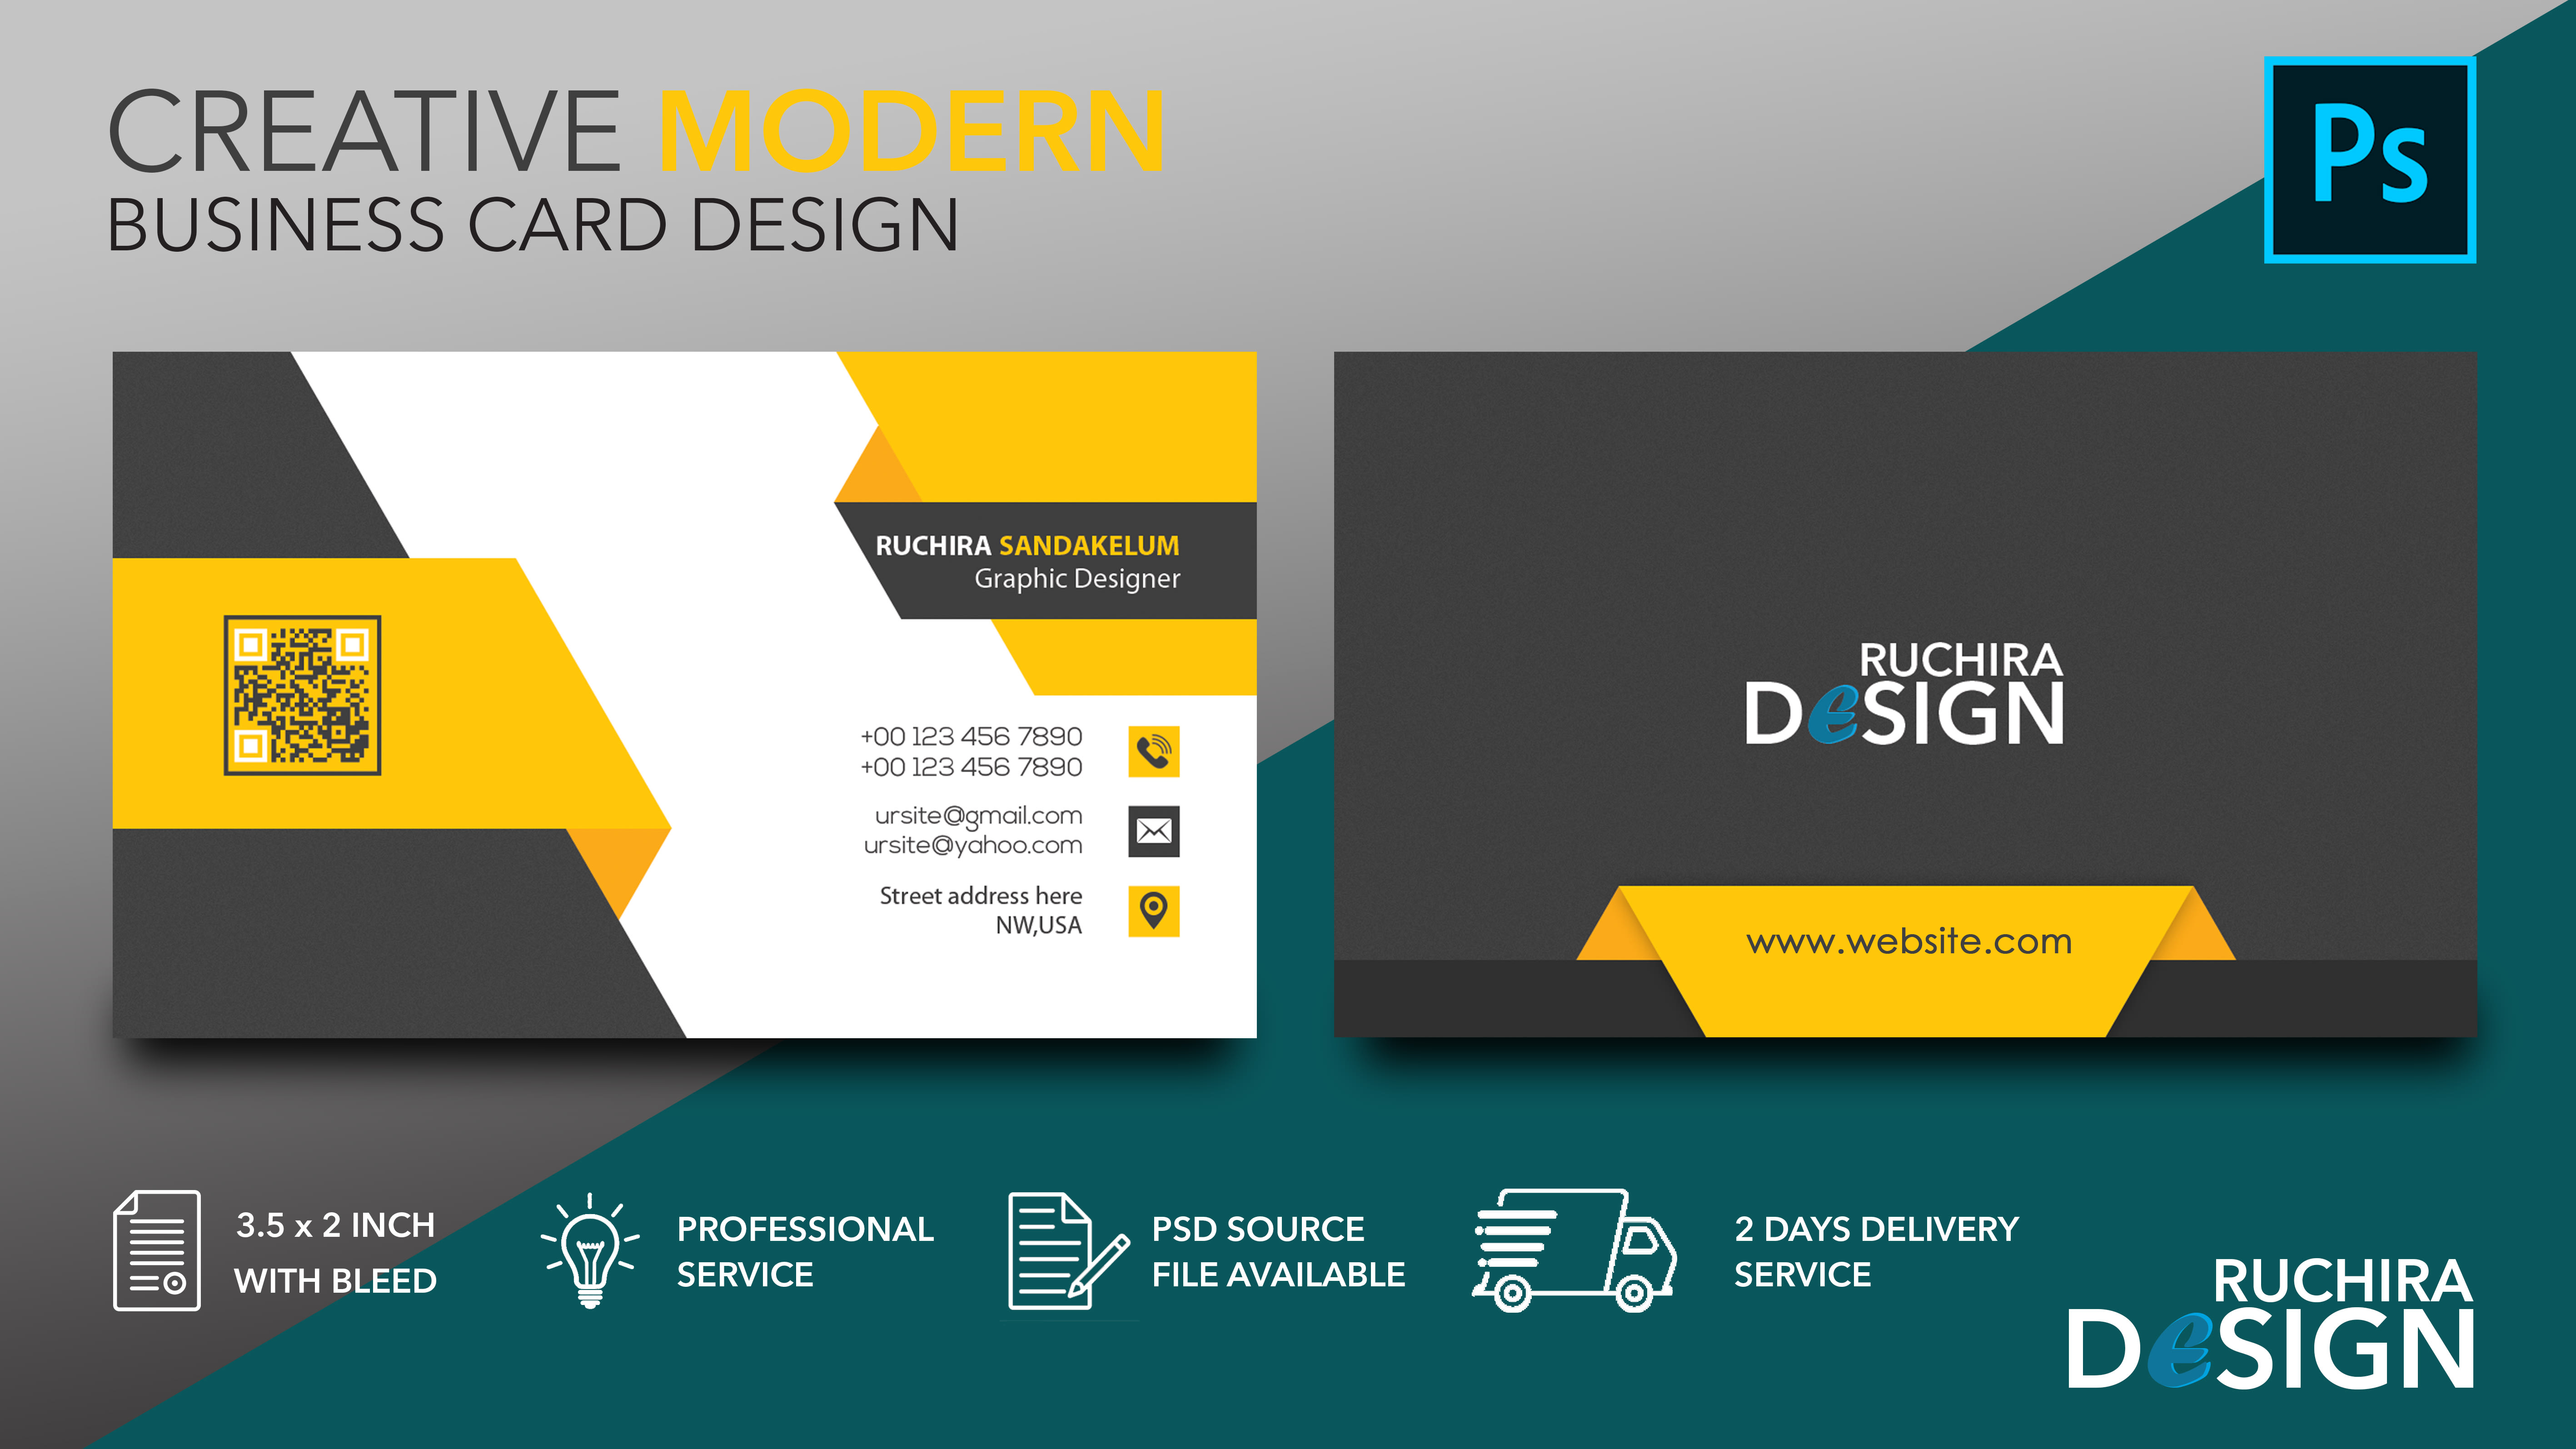 I will do creative modern and affordable business card design